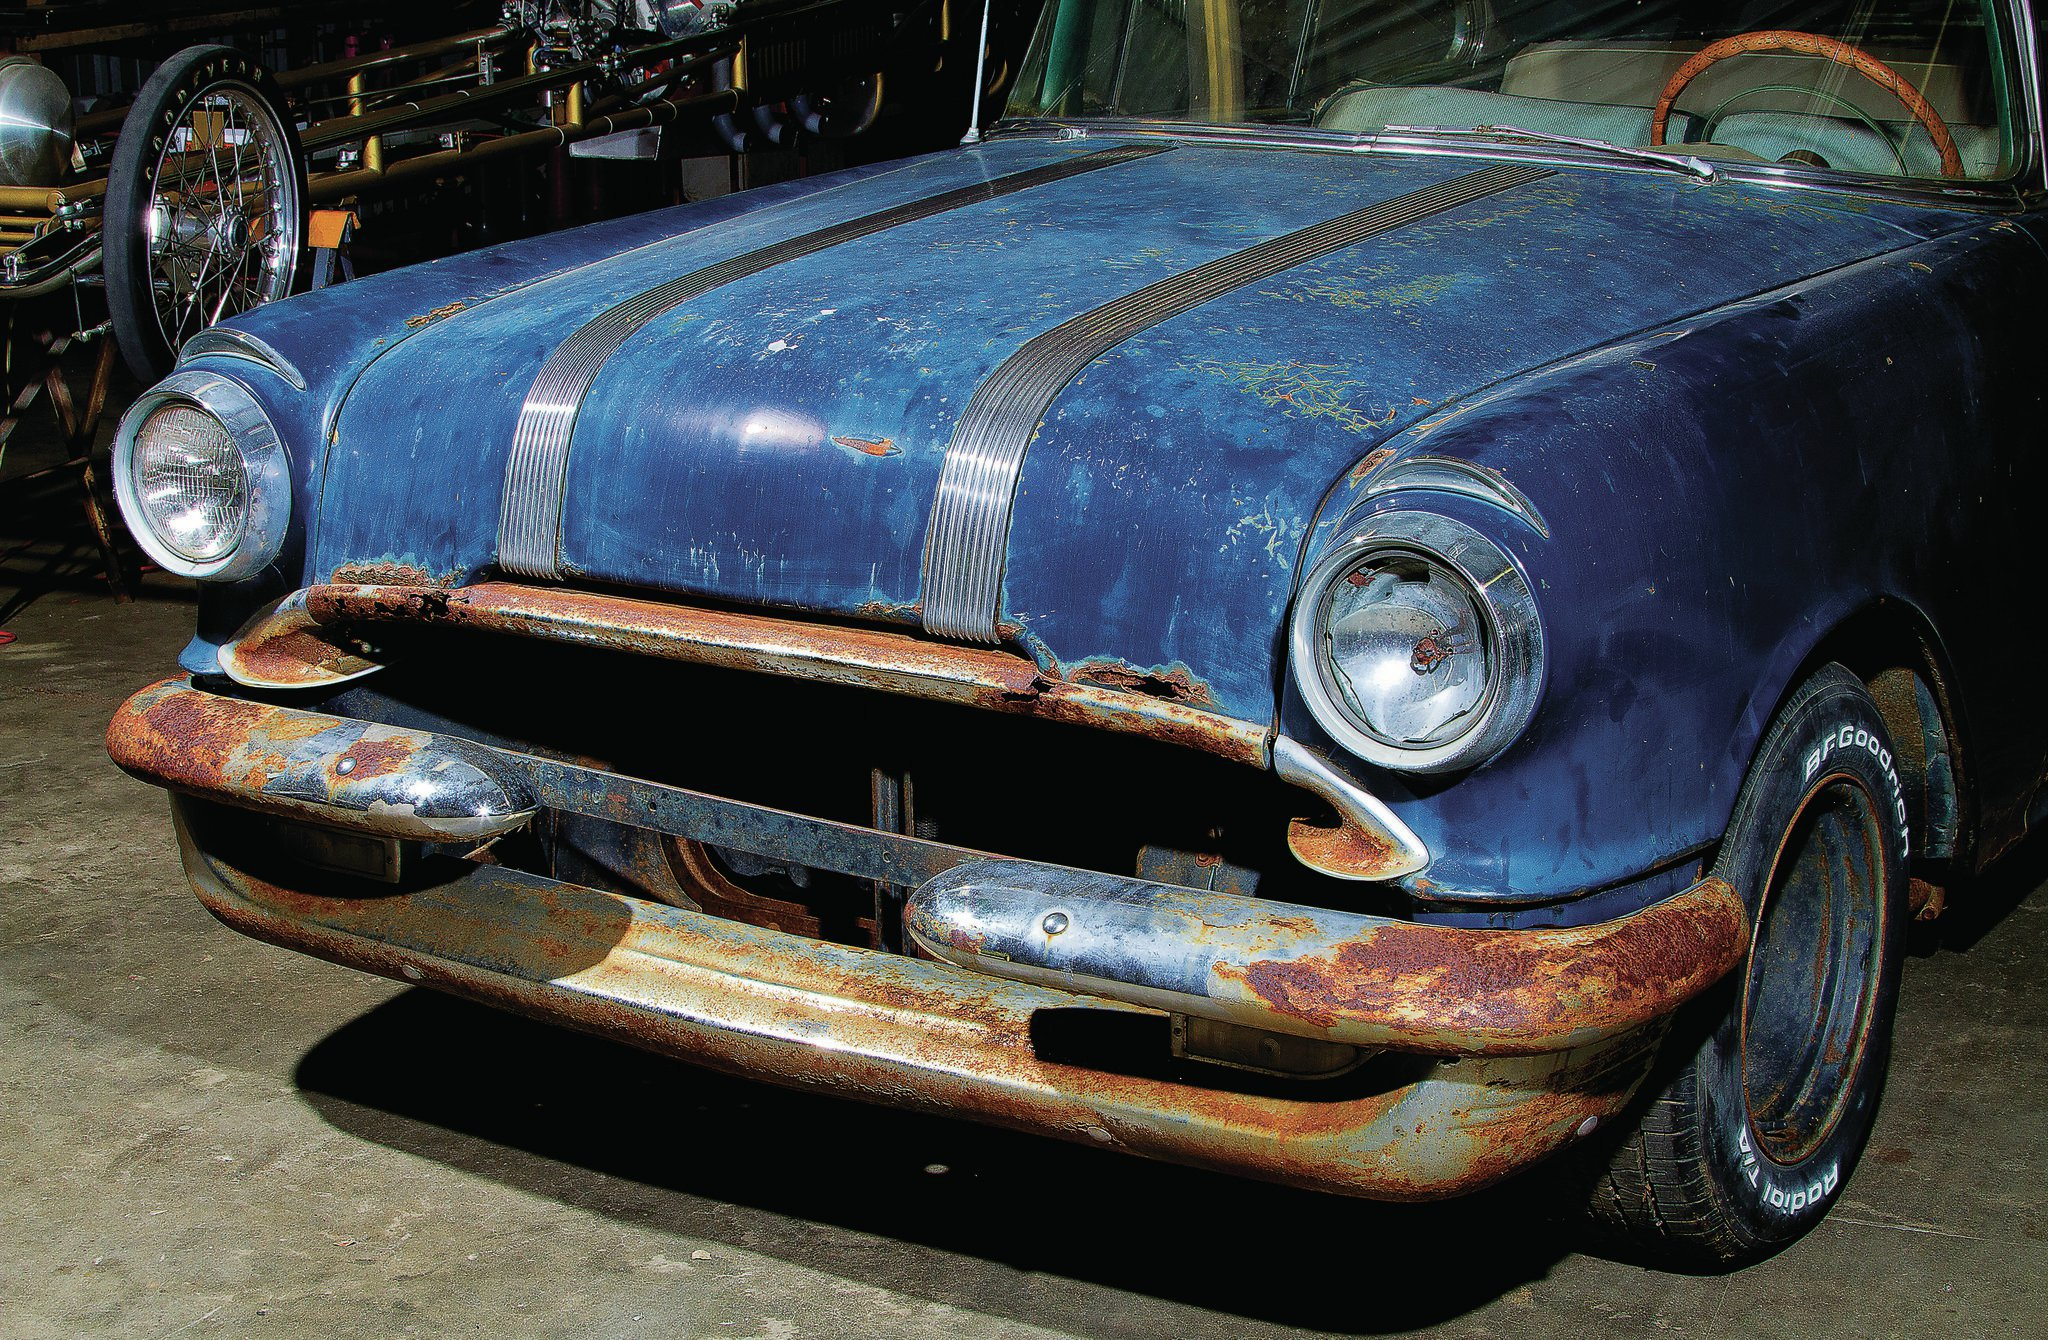 The Chieftain had its inner bumper recessed into the grille, connecting the two chrome bumper halves and improving airflow, which hints at the car's possible street/strip racing days.